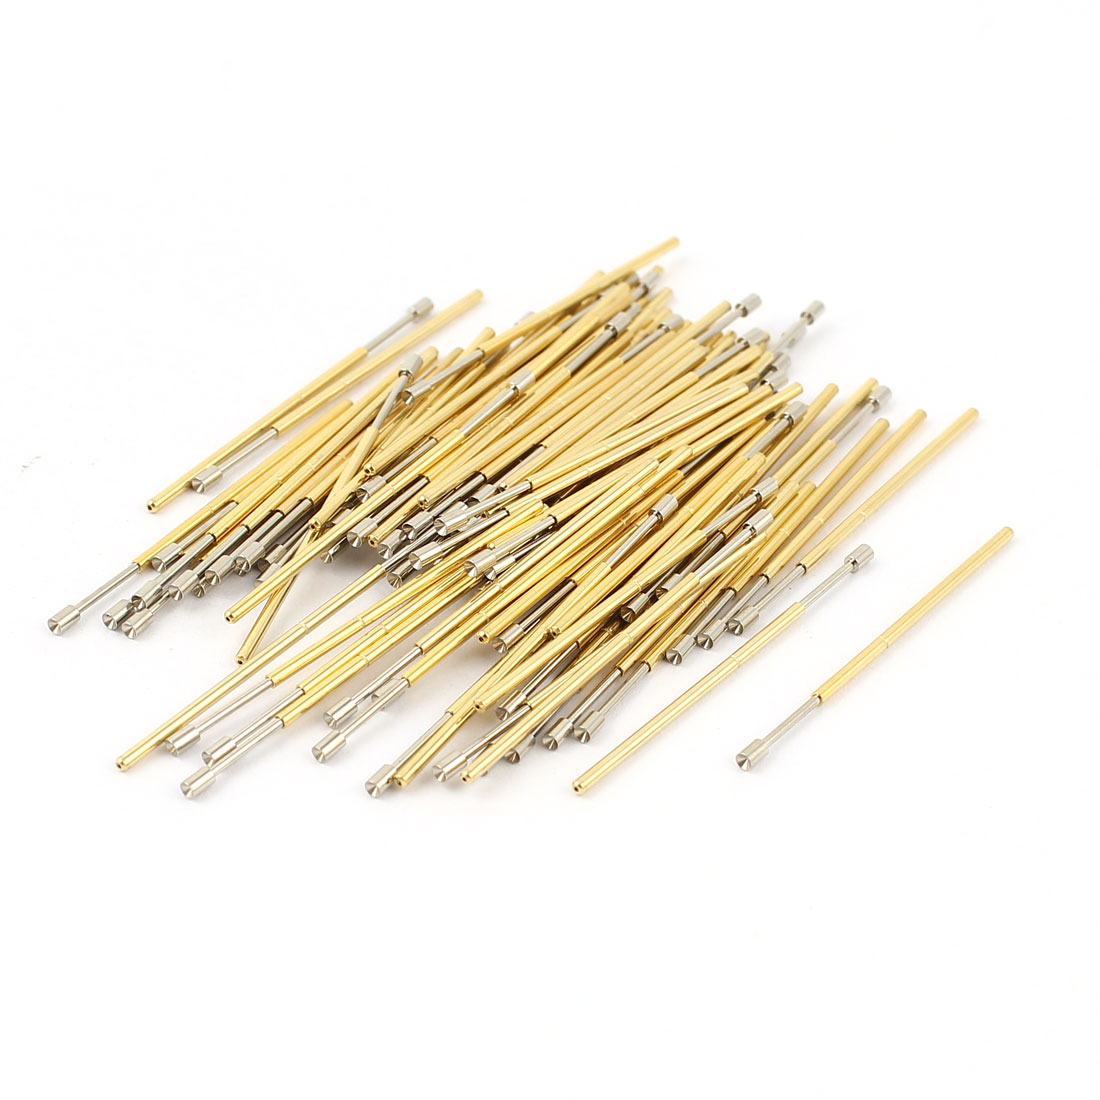 100 Pcs PL75-A2 1.3mm Concave Tip Spring Testing Probes Pin 33mm Length